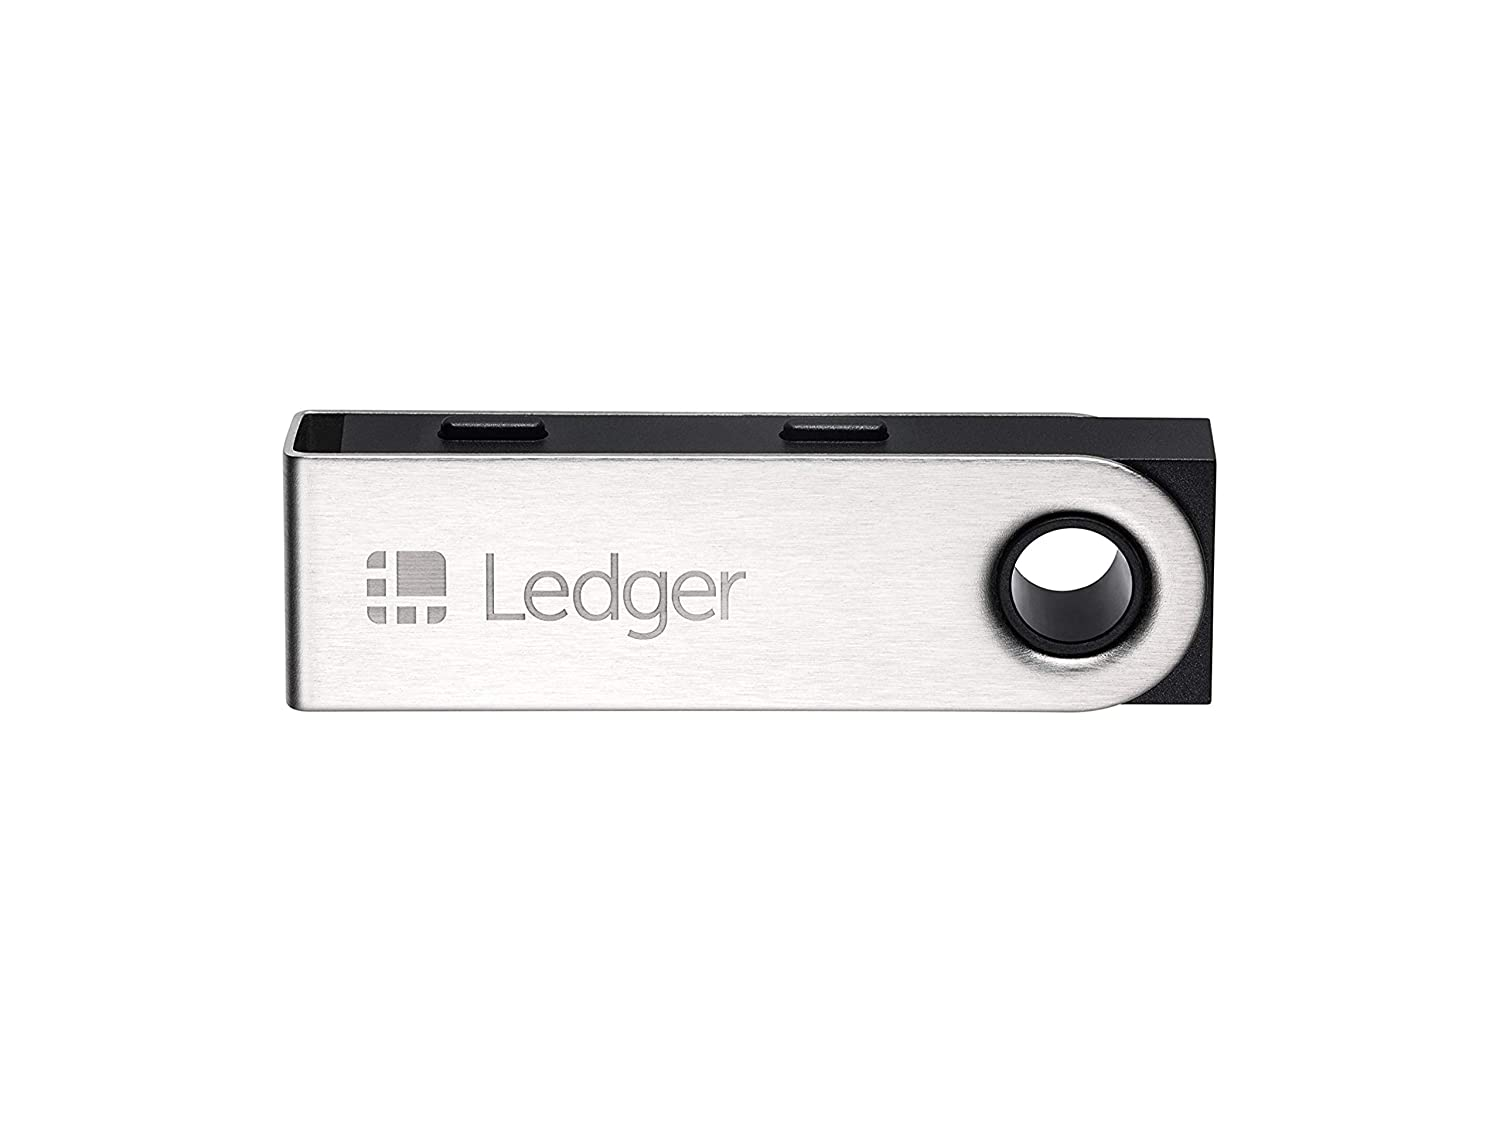 Ledger Nano S Cryptocurrency Hardware Wallet Computers Bitcoin Accessories